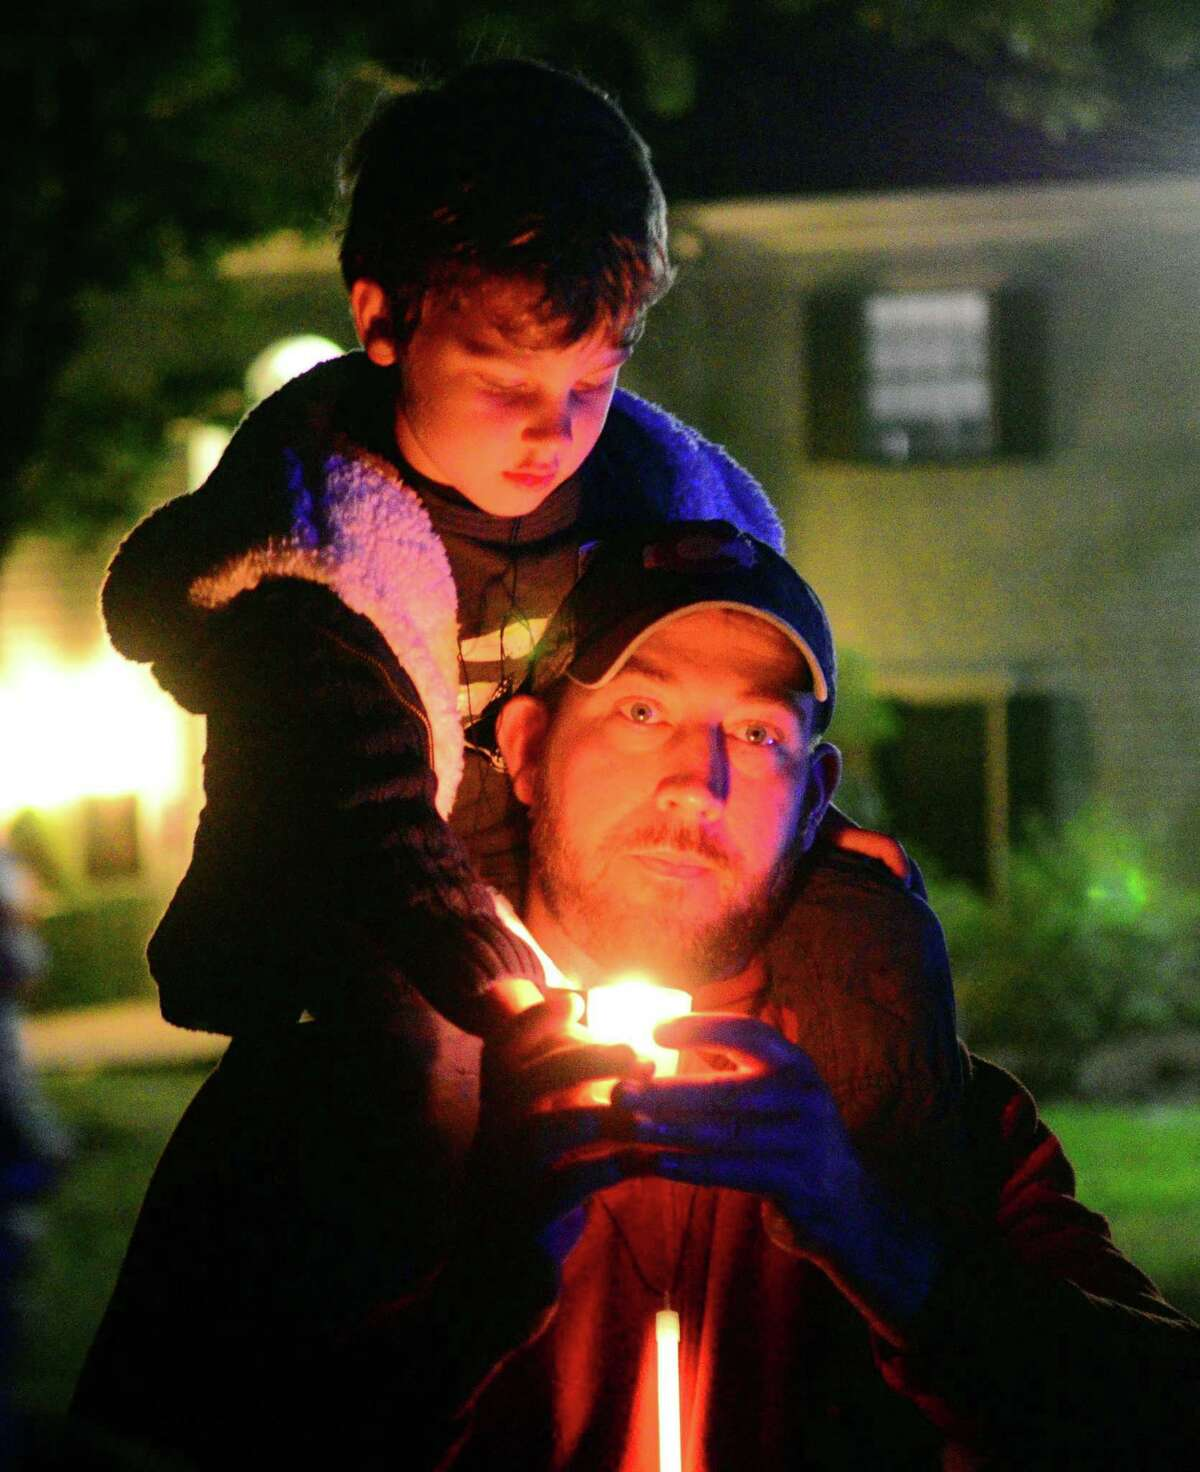 Matt Donovan, of Fairfield, and his son Liam, 5, attend a vigil to honor the victims and survivors of the mass shooting in Las Vegas at Burr Homestead in Fairfield, Conn. on Wednesday Oct. 4, 2017. The vigil was organized by CT Against Gun Violence.